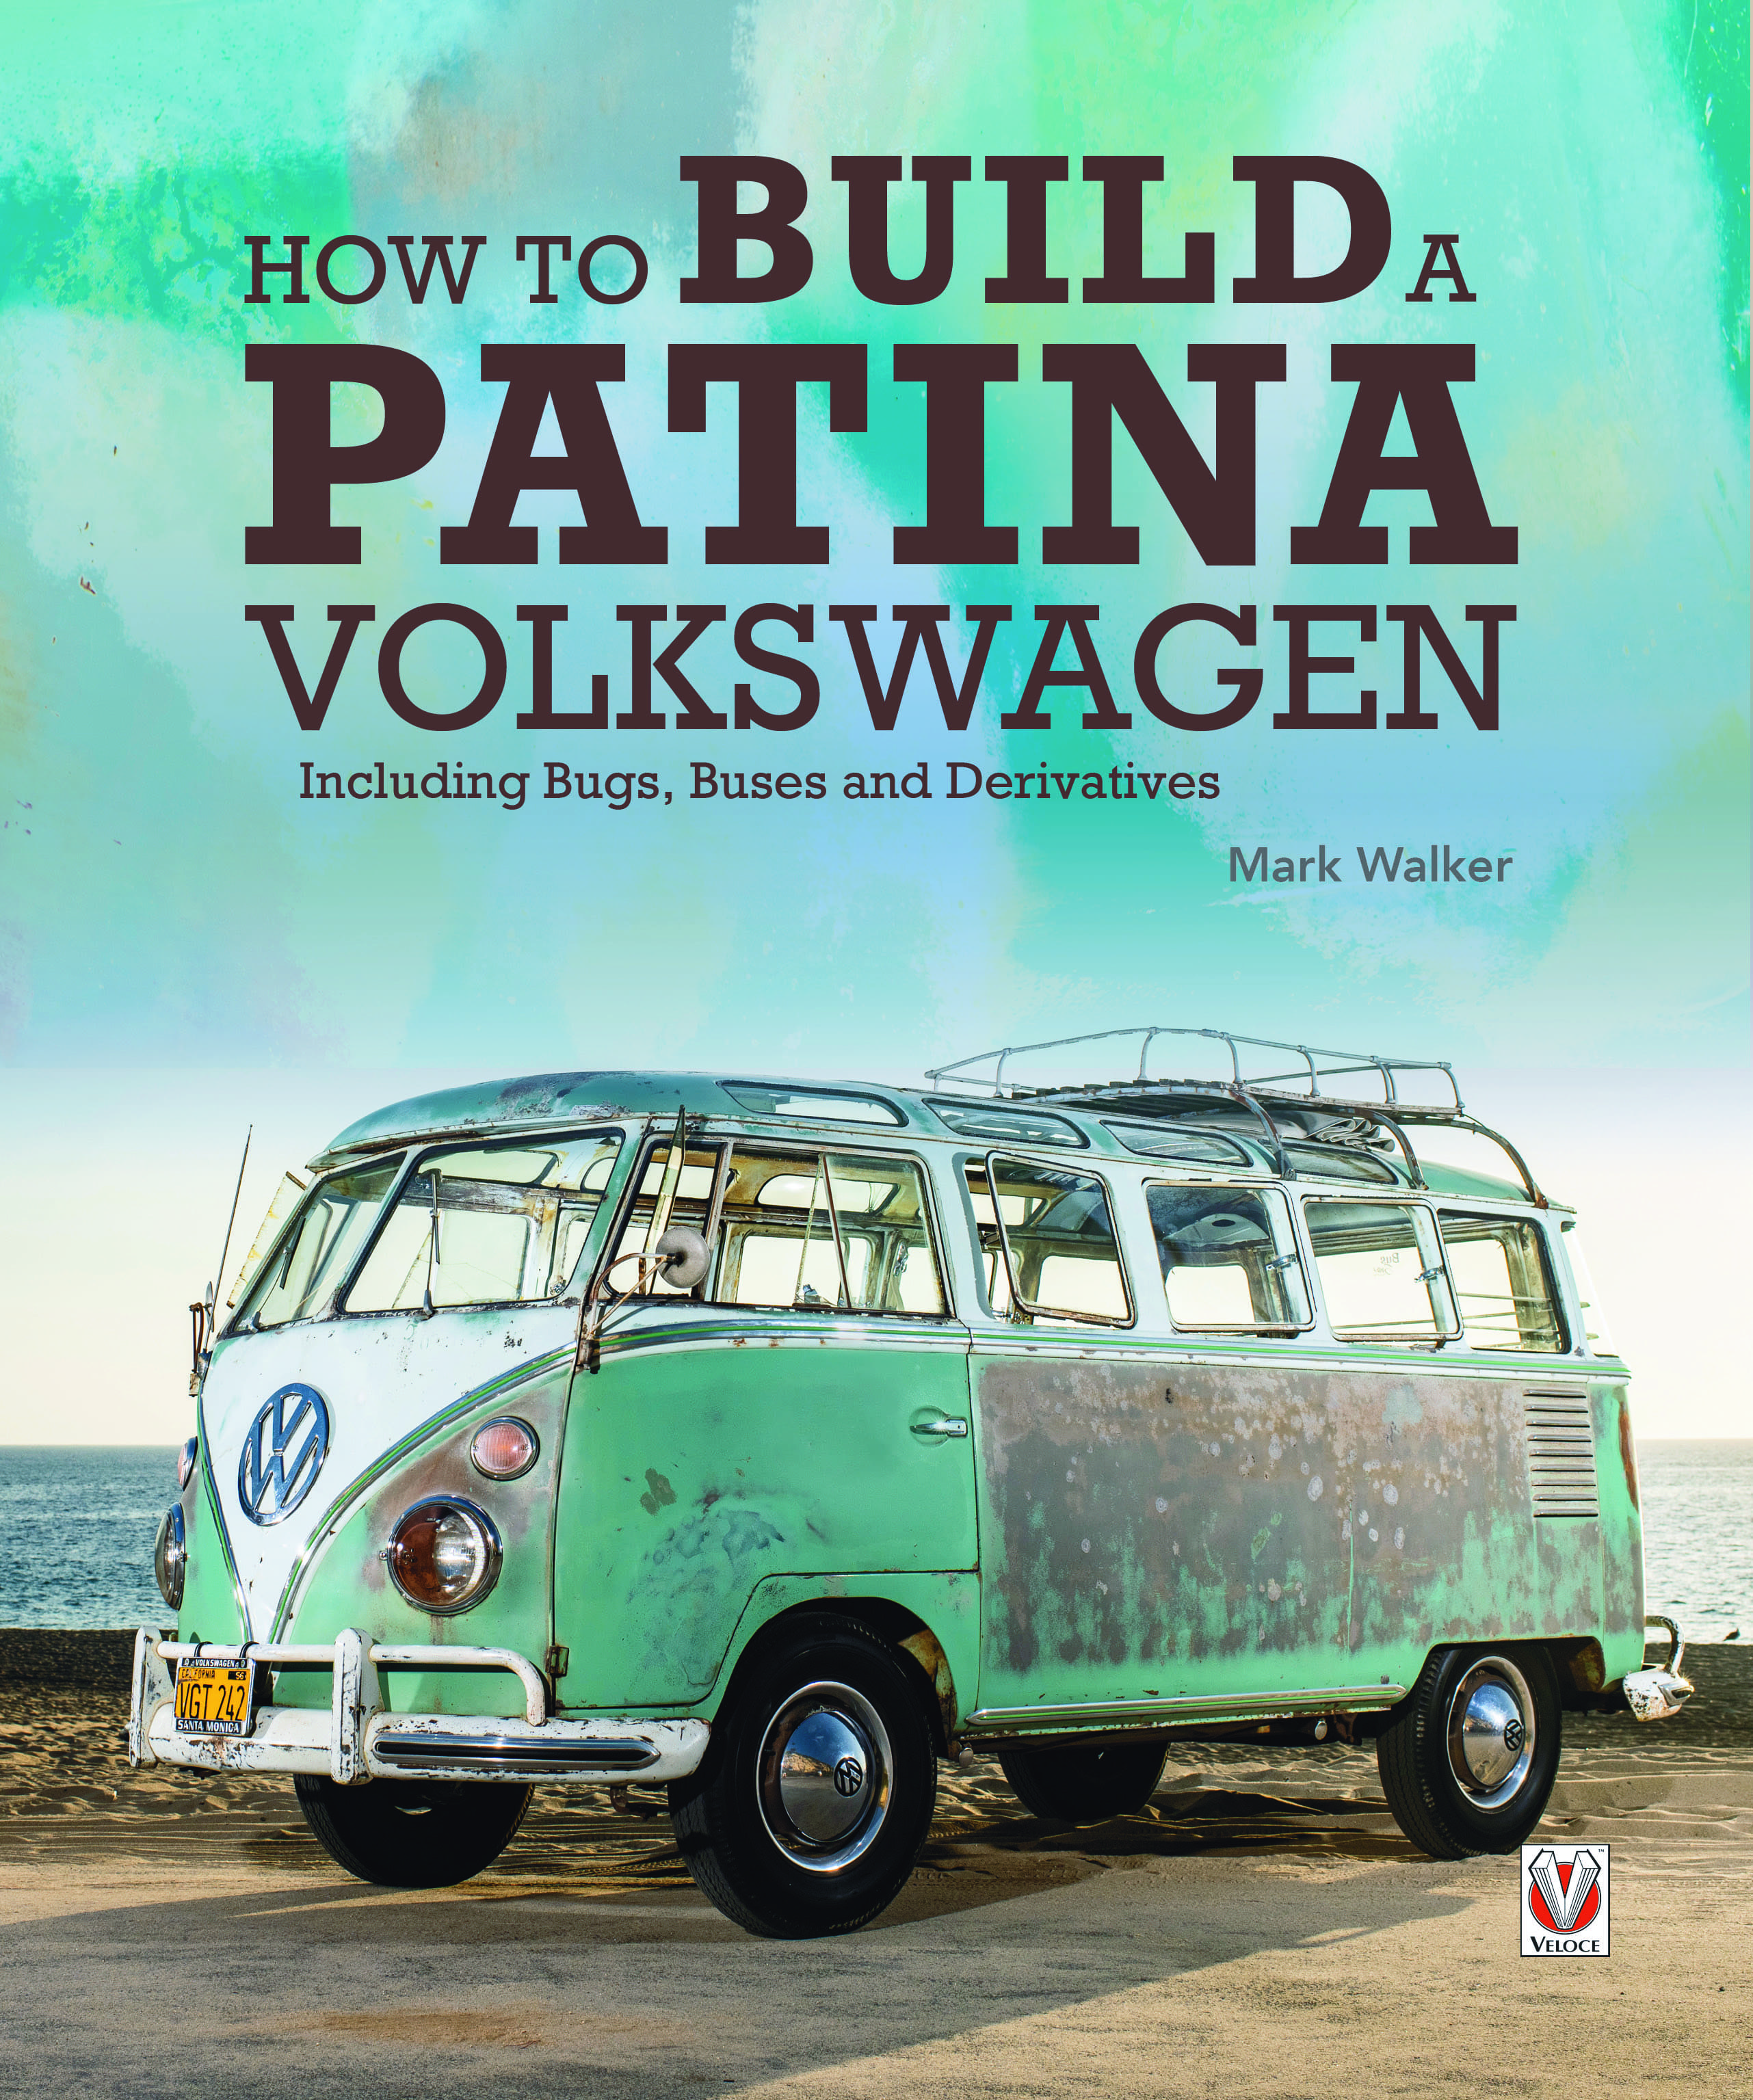 How to Build a Patina Volkswagen cover